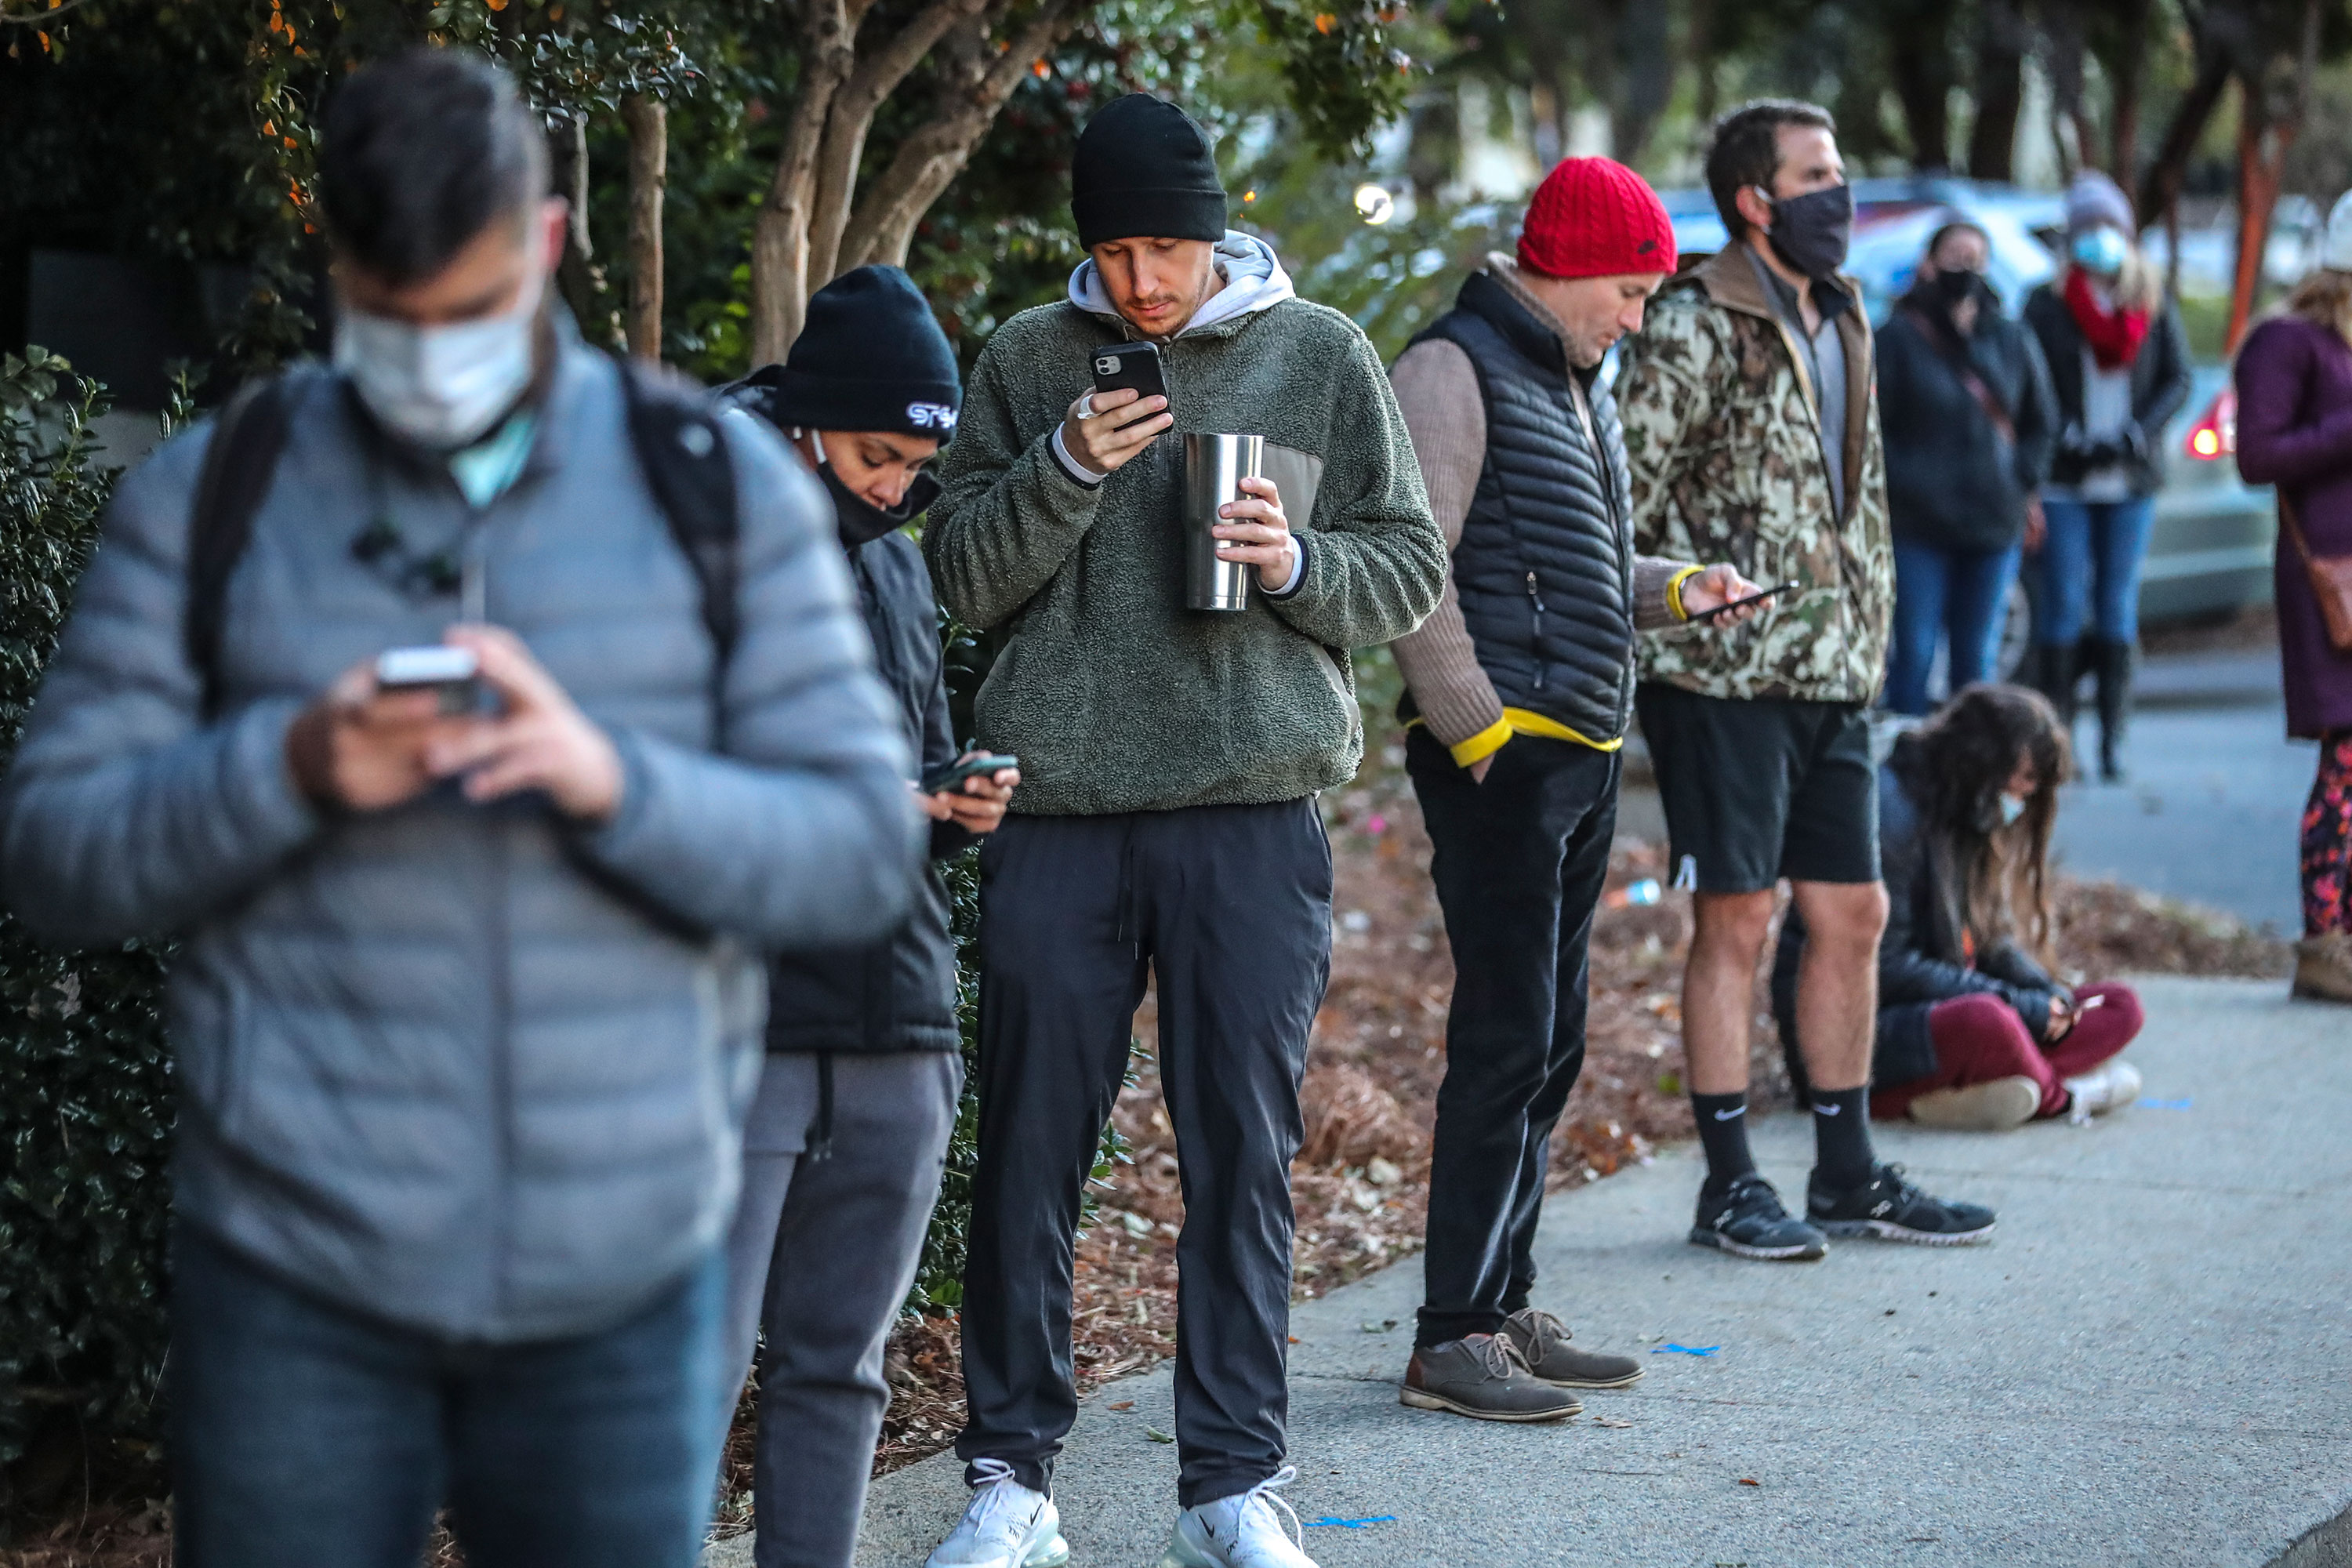 Voters wait on line to cast their votes in Atlanta on November 3.